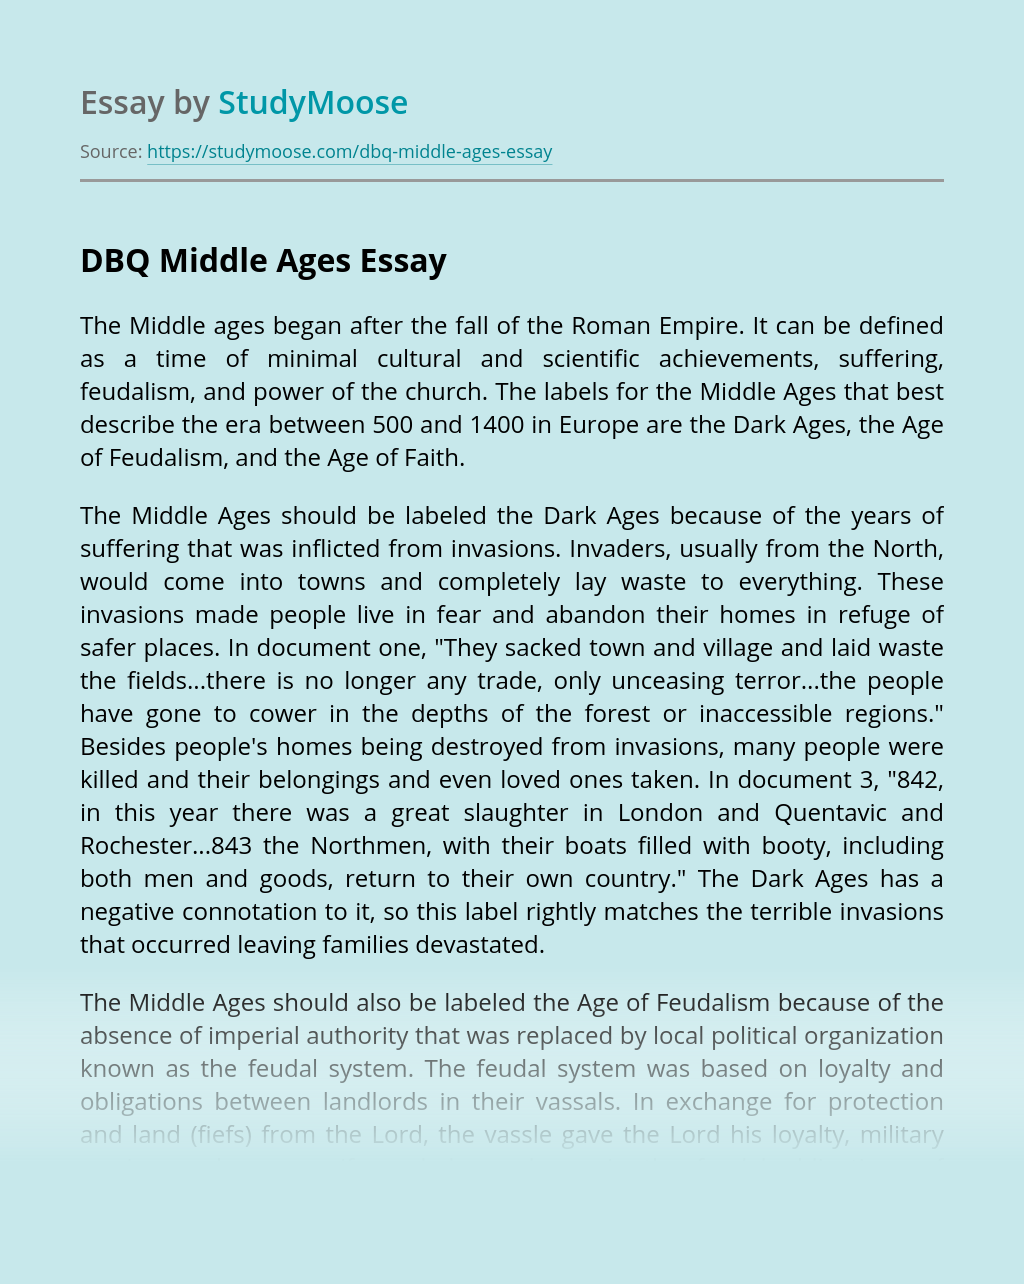 DBQ Middle Ages